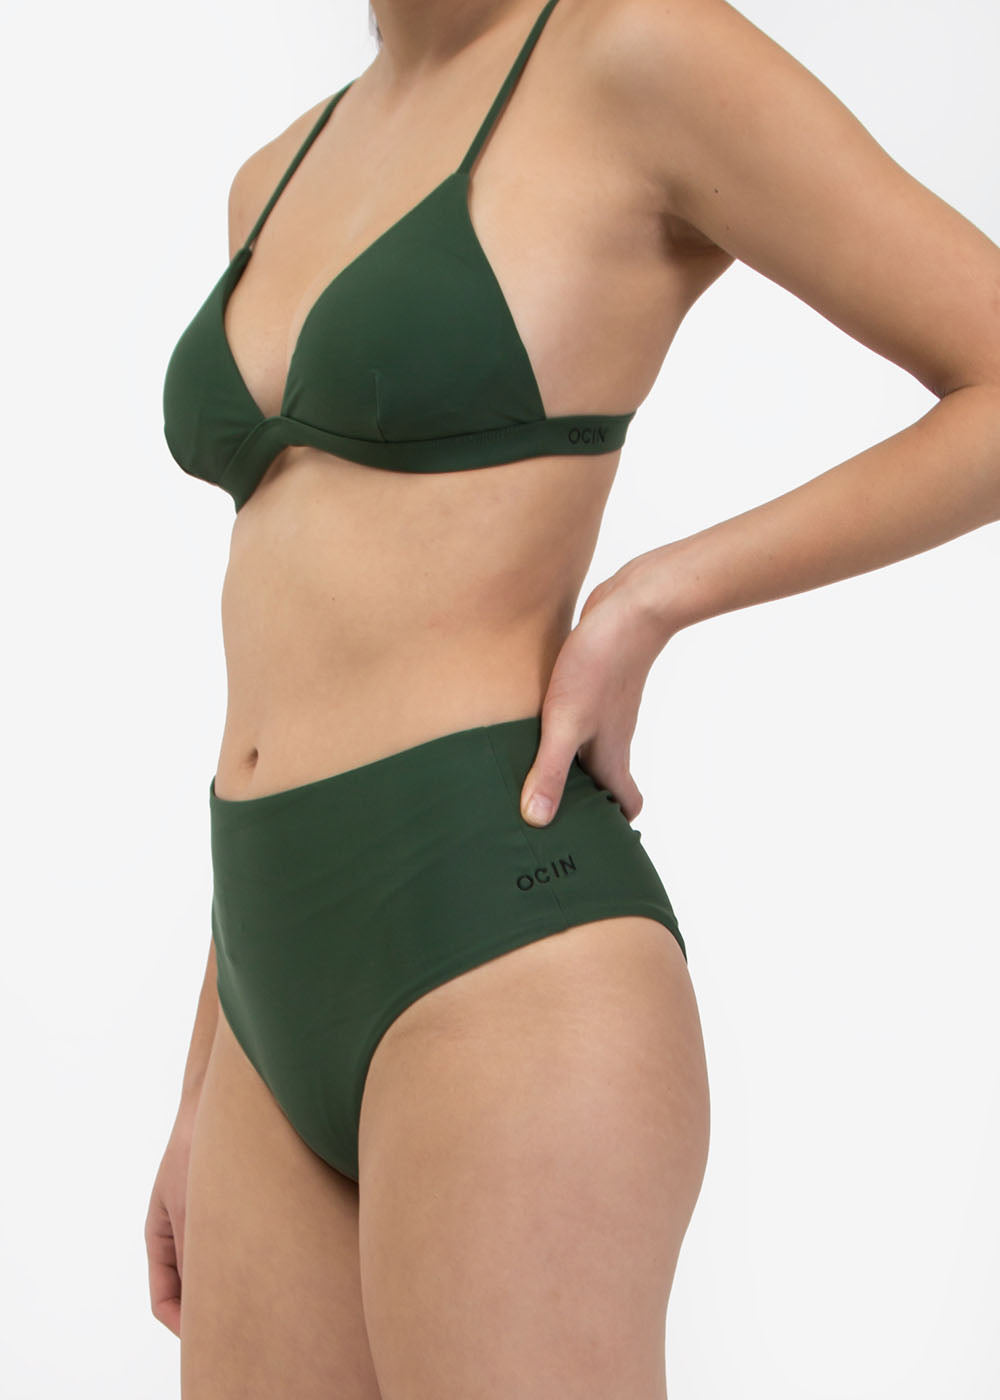 OCIN Olivine Hi Waisted Swim Bottom — Shop sustainable fashion and slow fashion at New Classics Studios